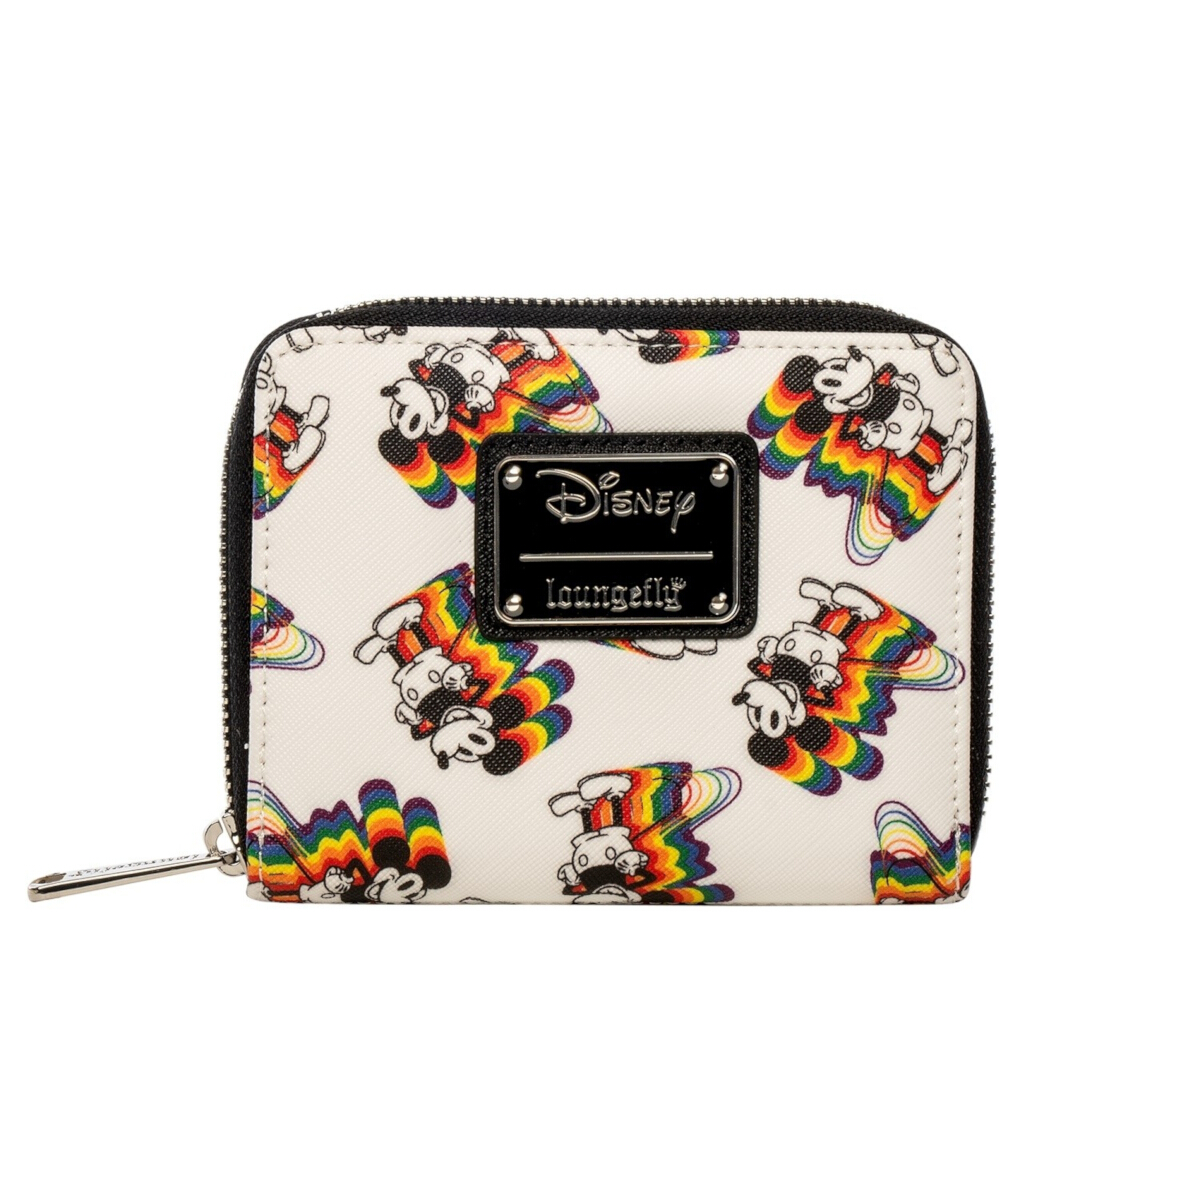 image Loungefly-Mickey-Mouse-Rainbows-Small-Wallet-Main-Image